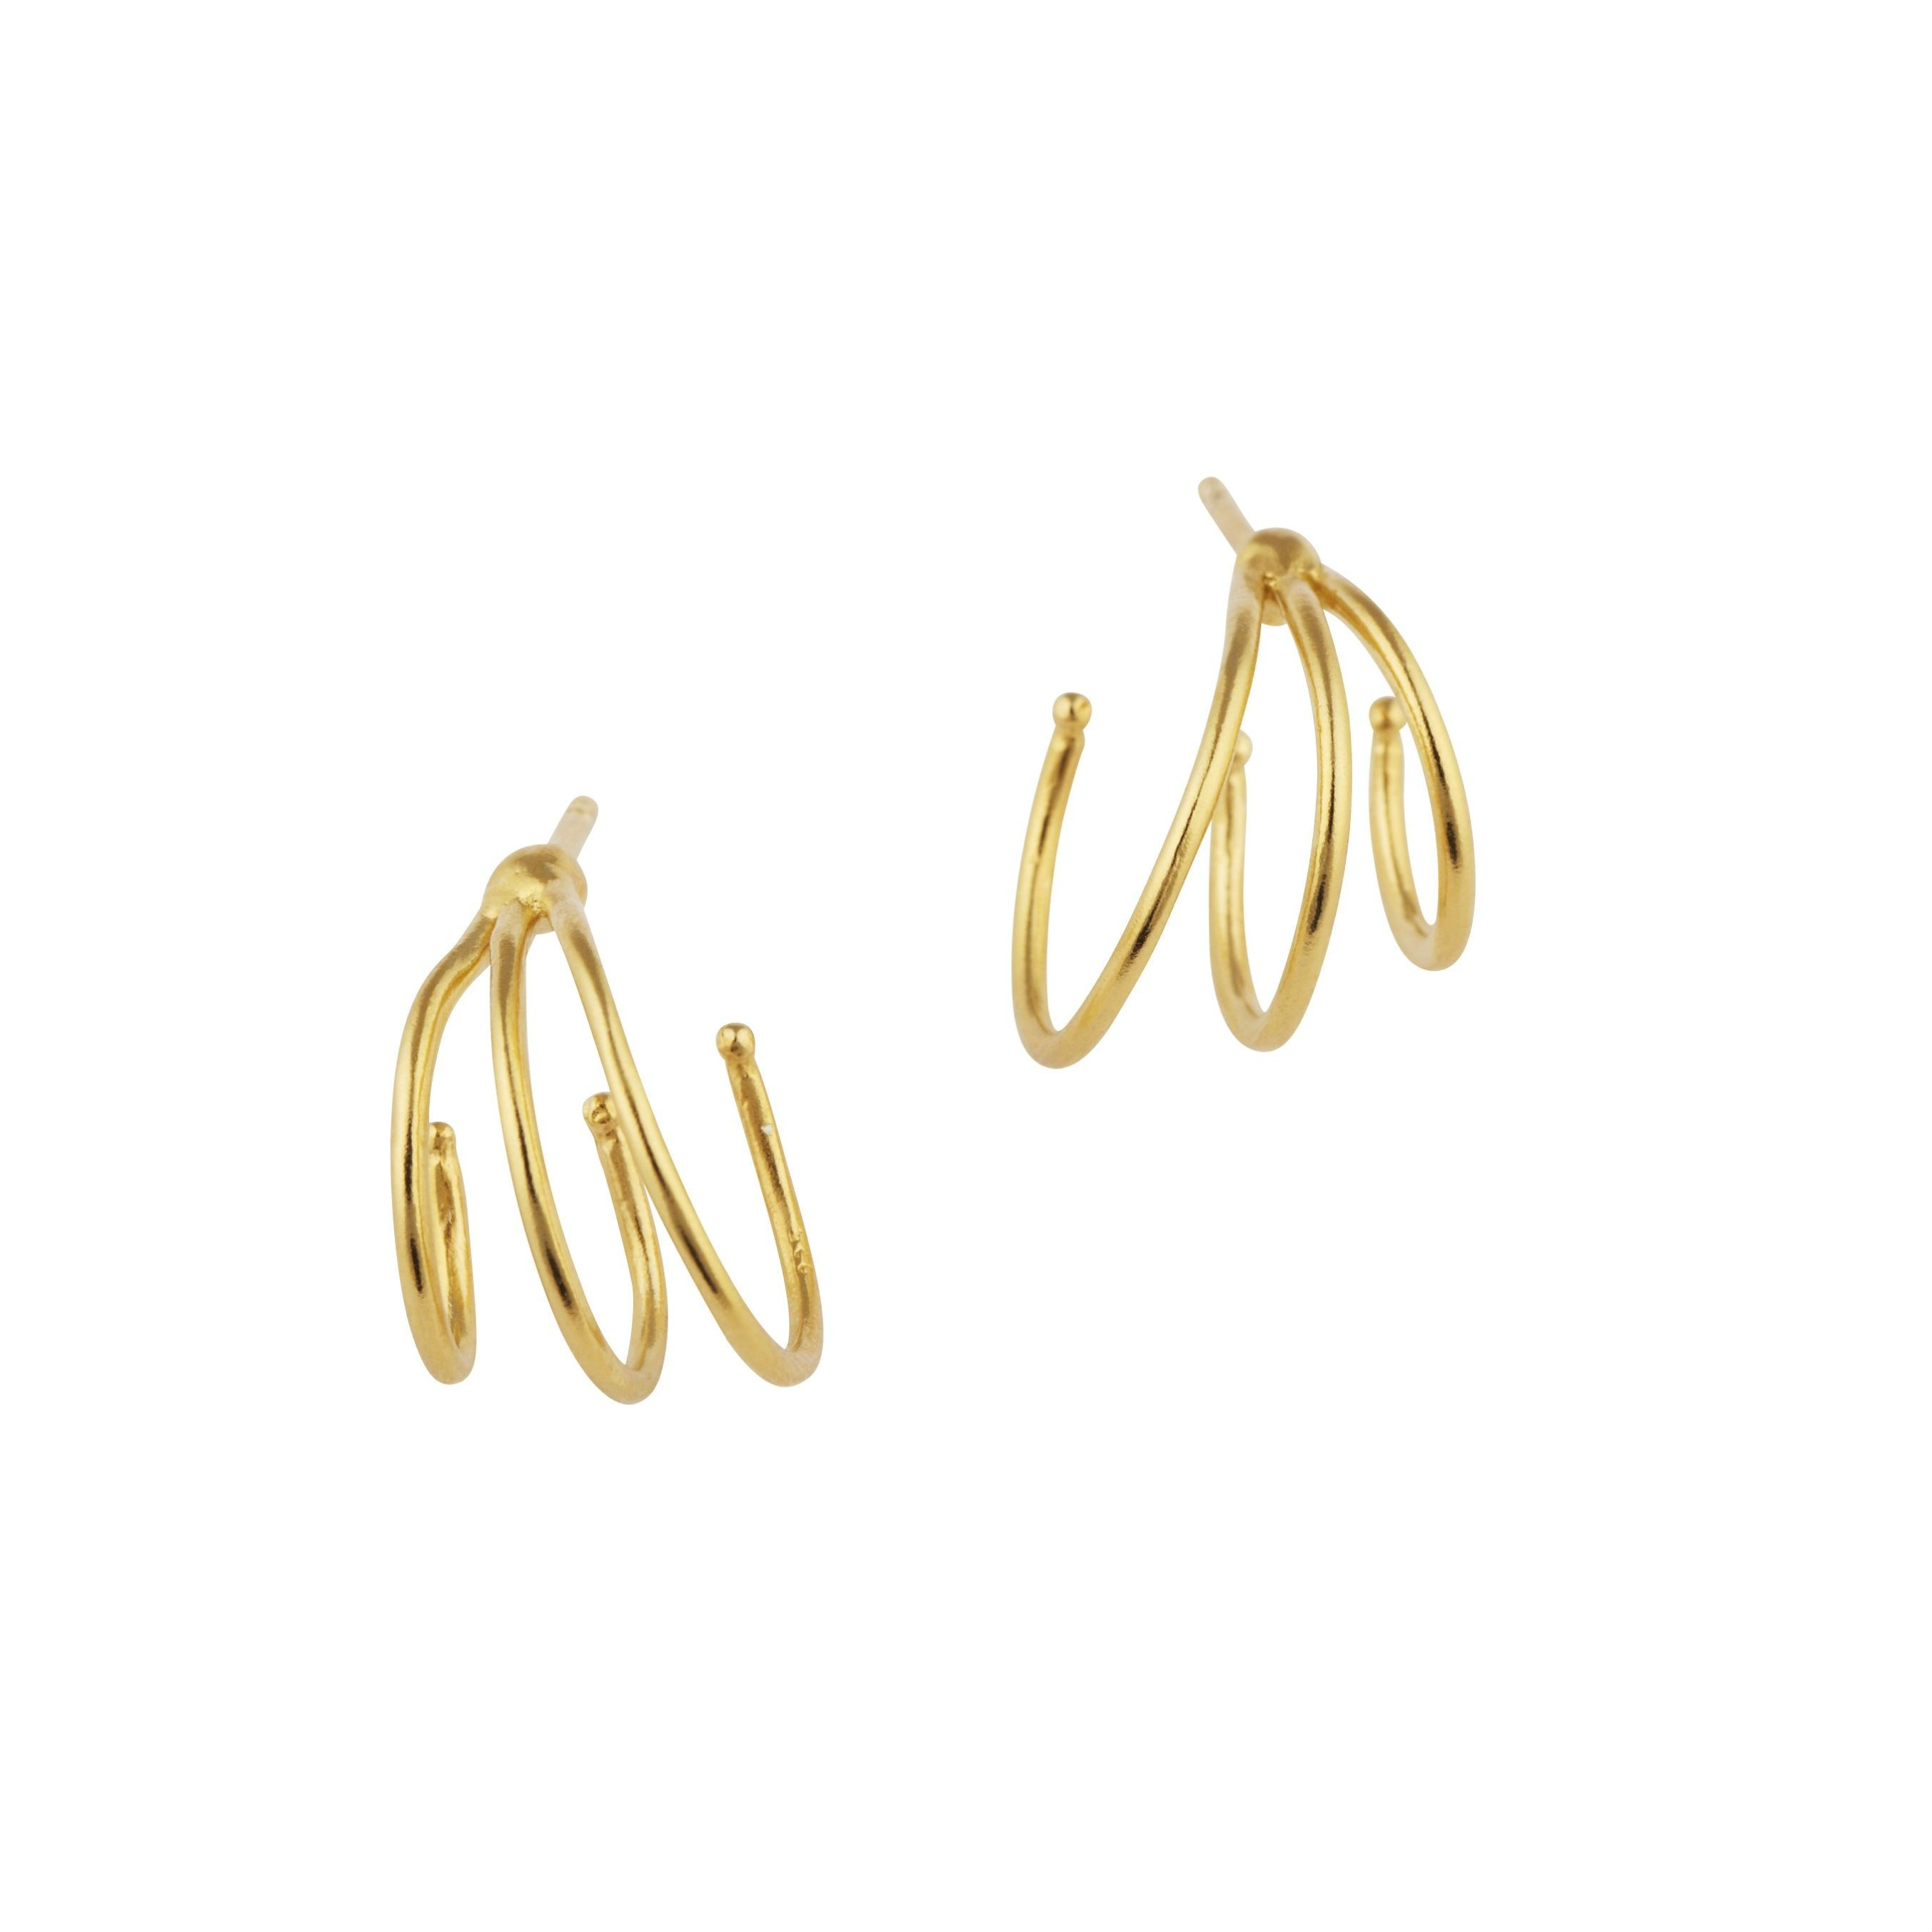 https://www.selecteddesigners.dk/media/catalog/product/p/a/paige_earplugs_18-carat-goldplating.jpg